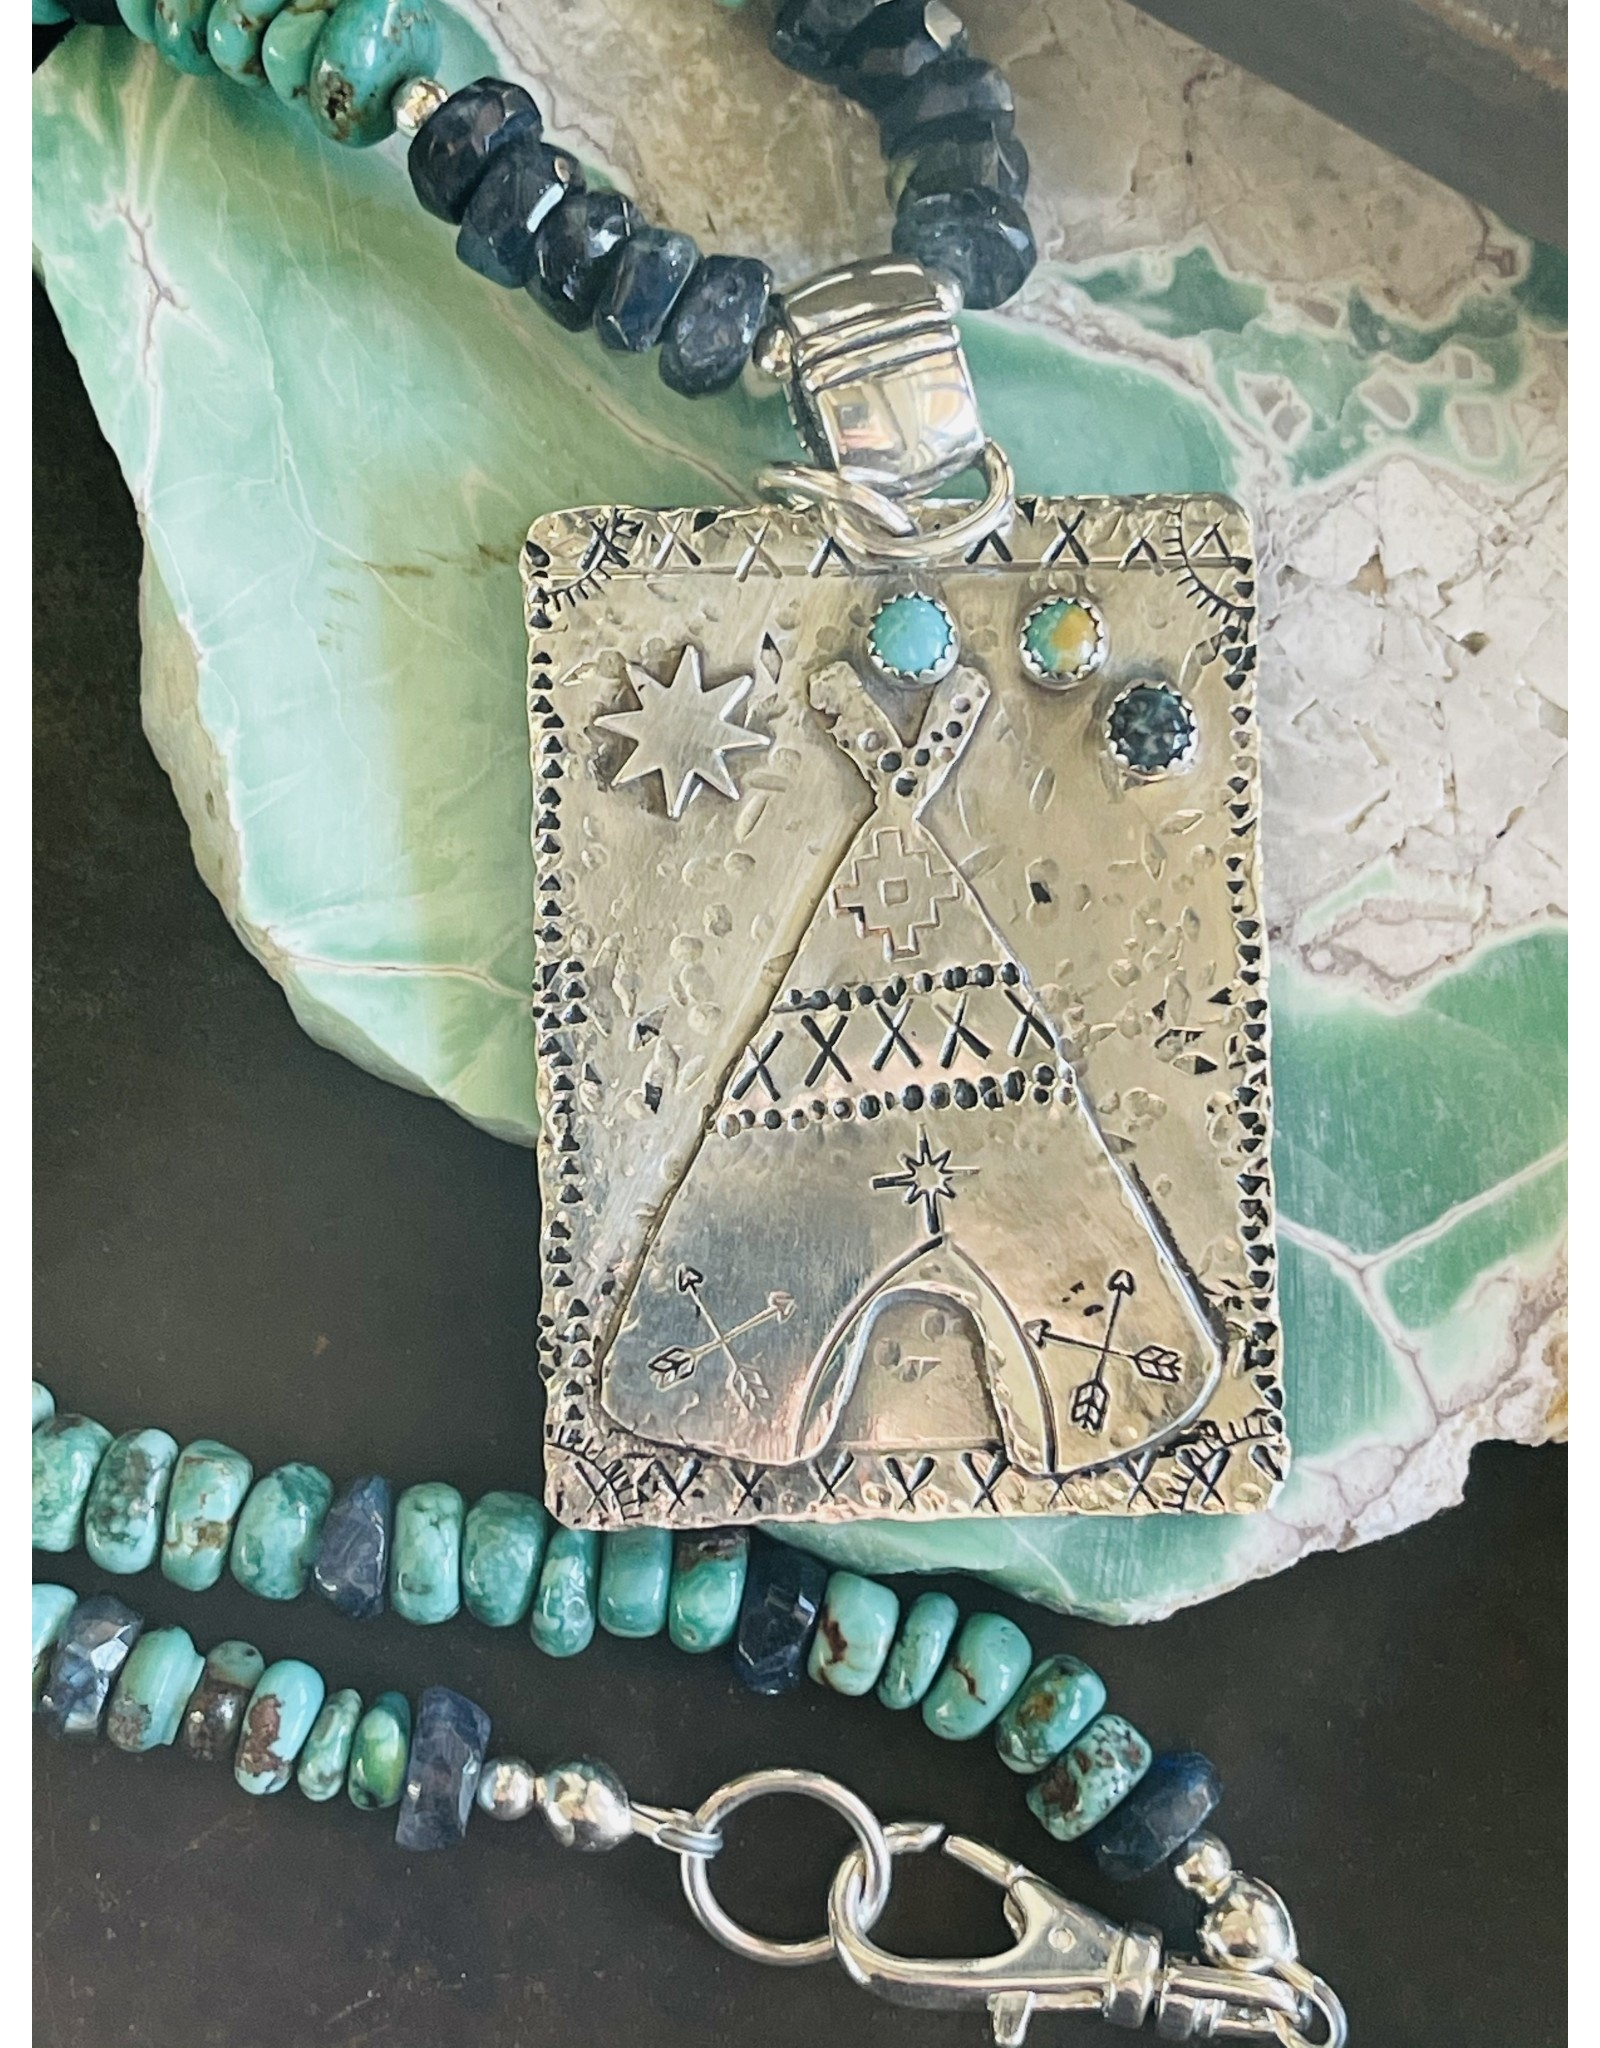 Annette Colby - Jeweler Teepee with Turquoise and Labradorite by Annette Colby